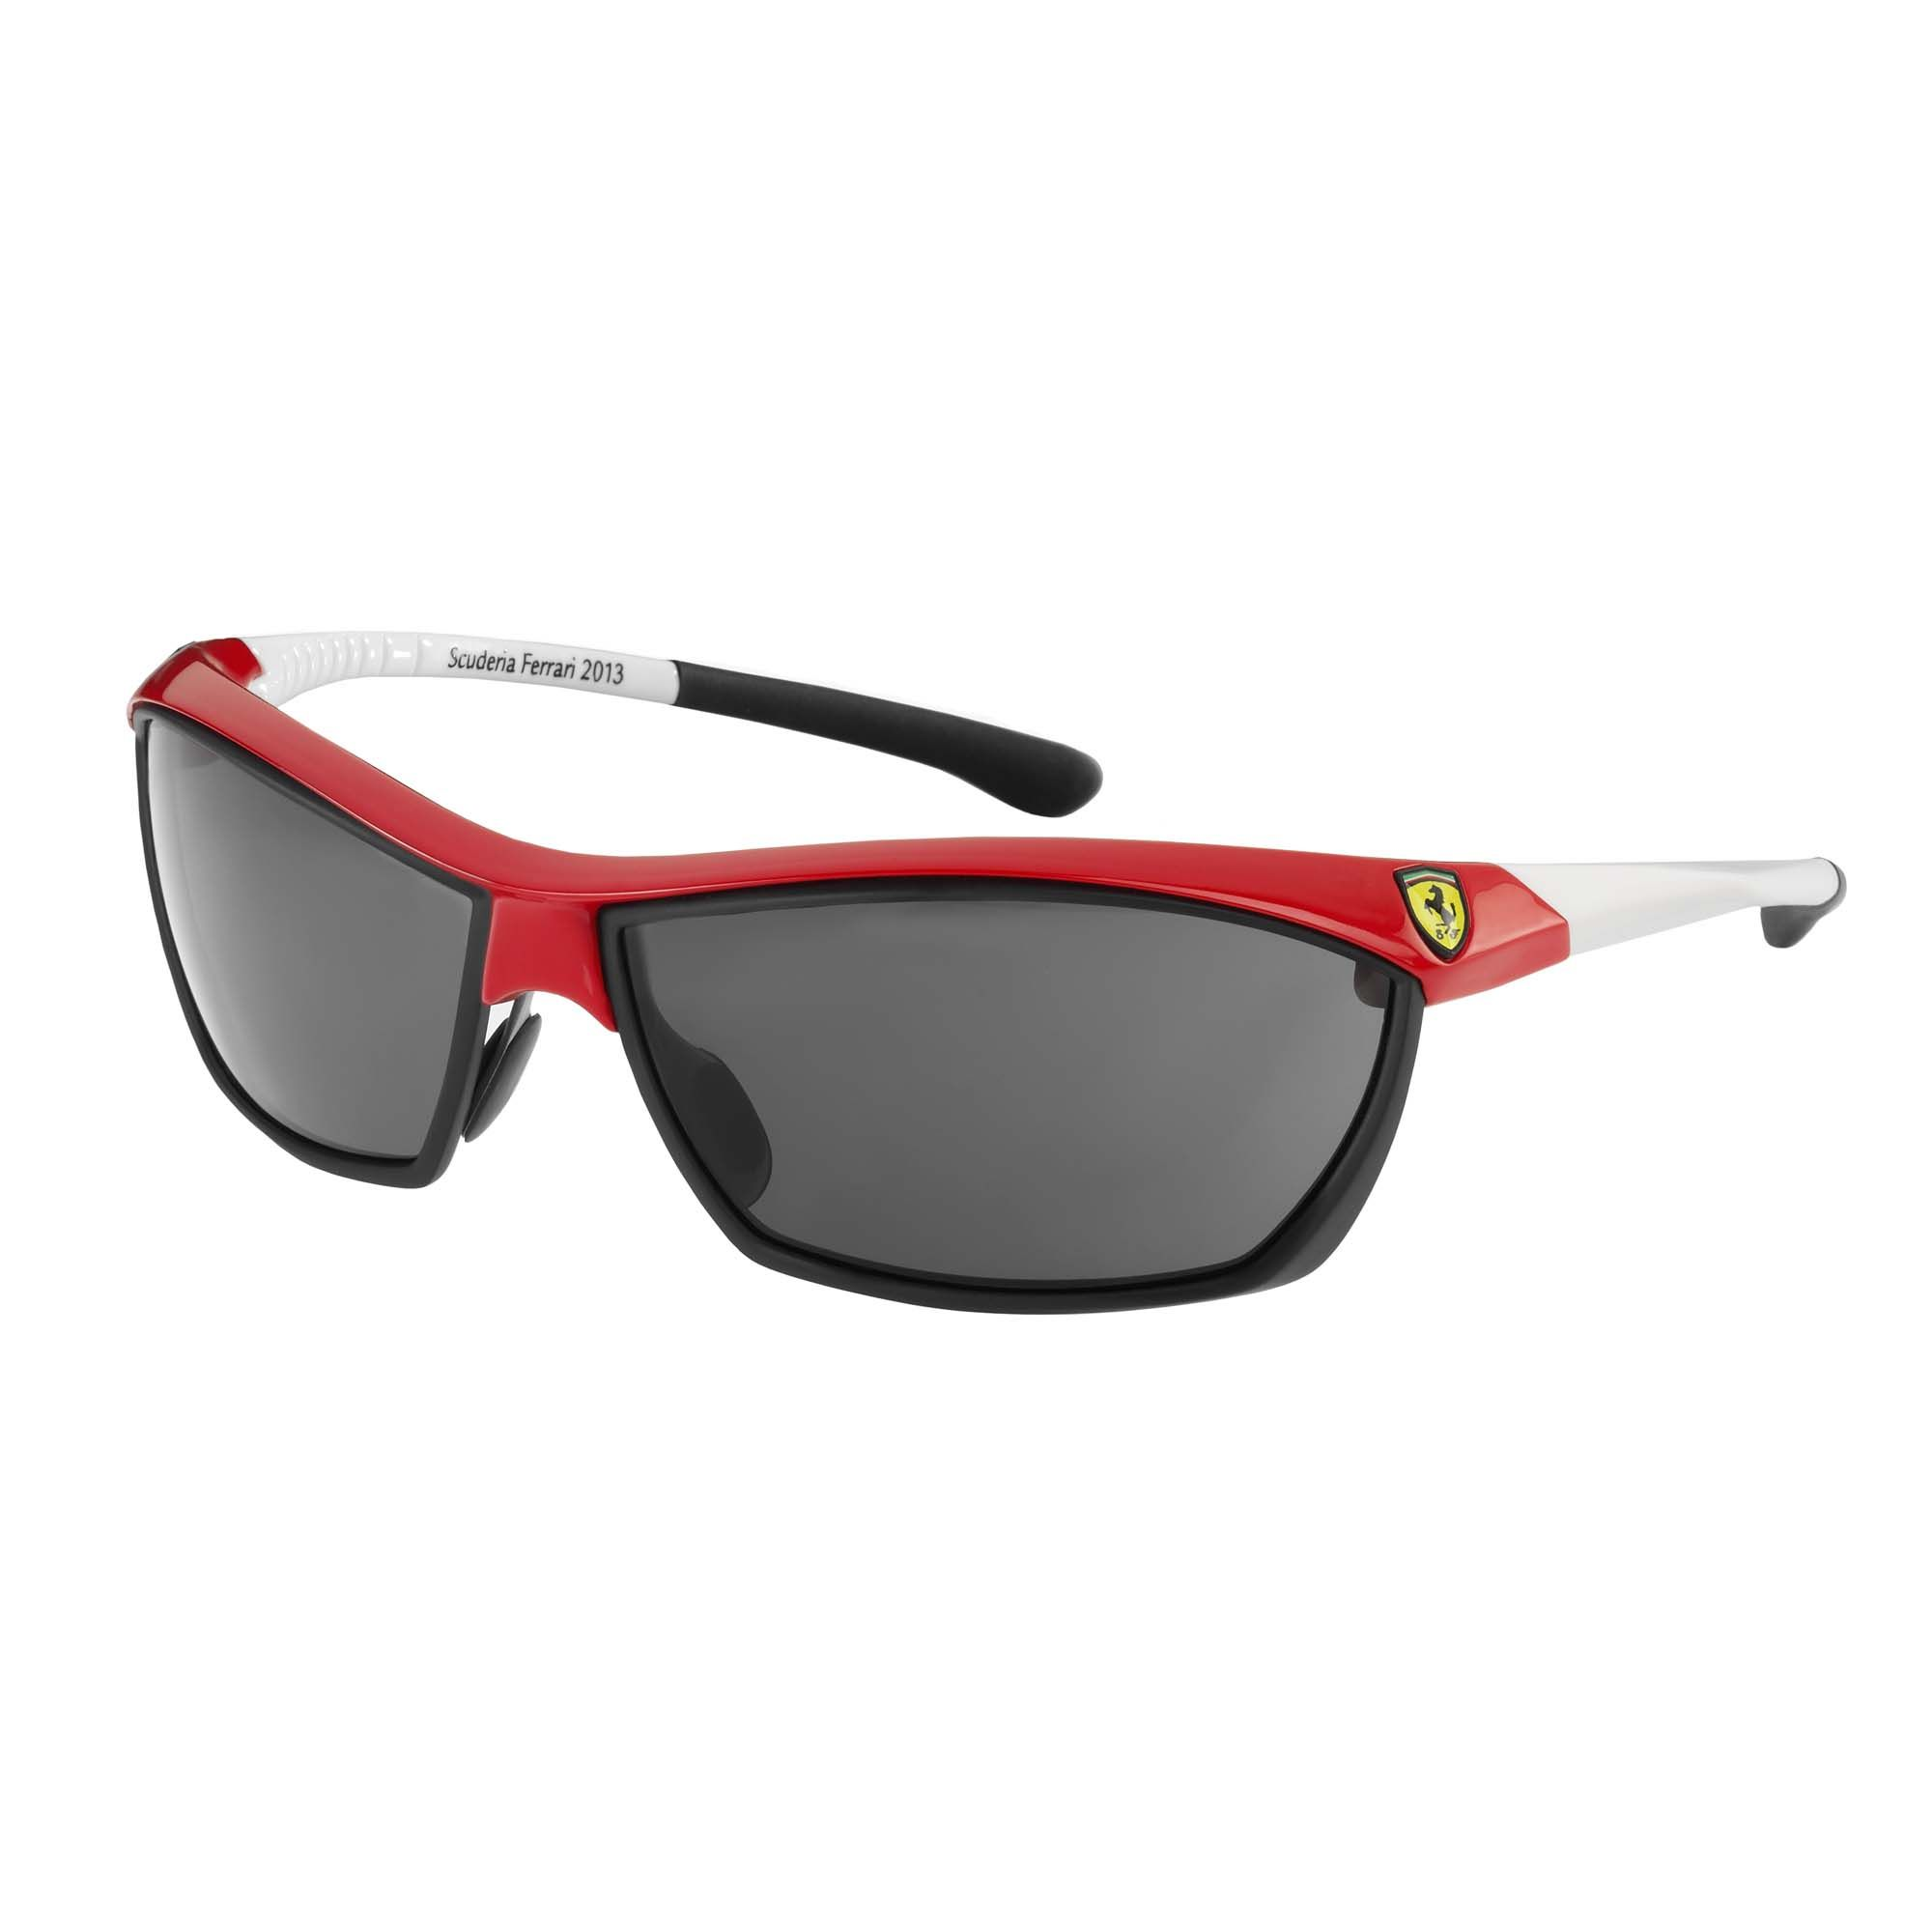 luxury store sunglasses men for items collection enjoy by ferrari news